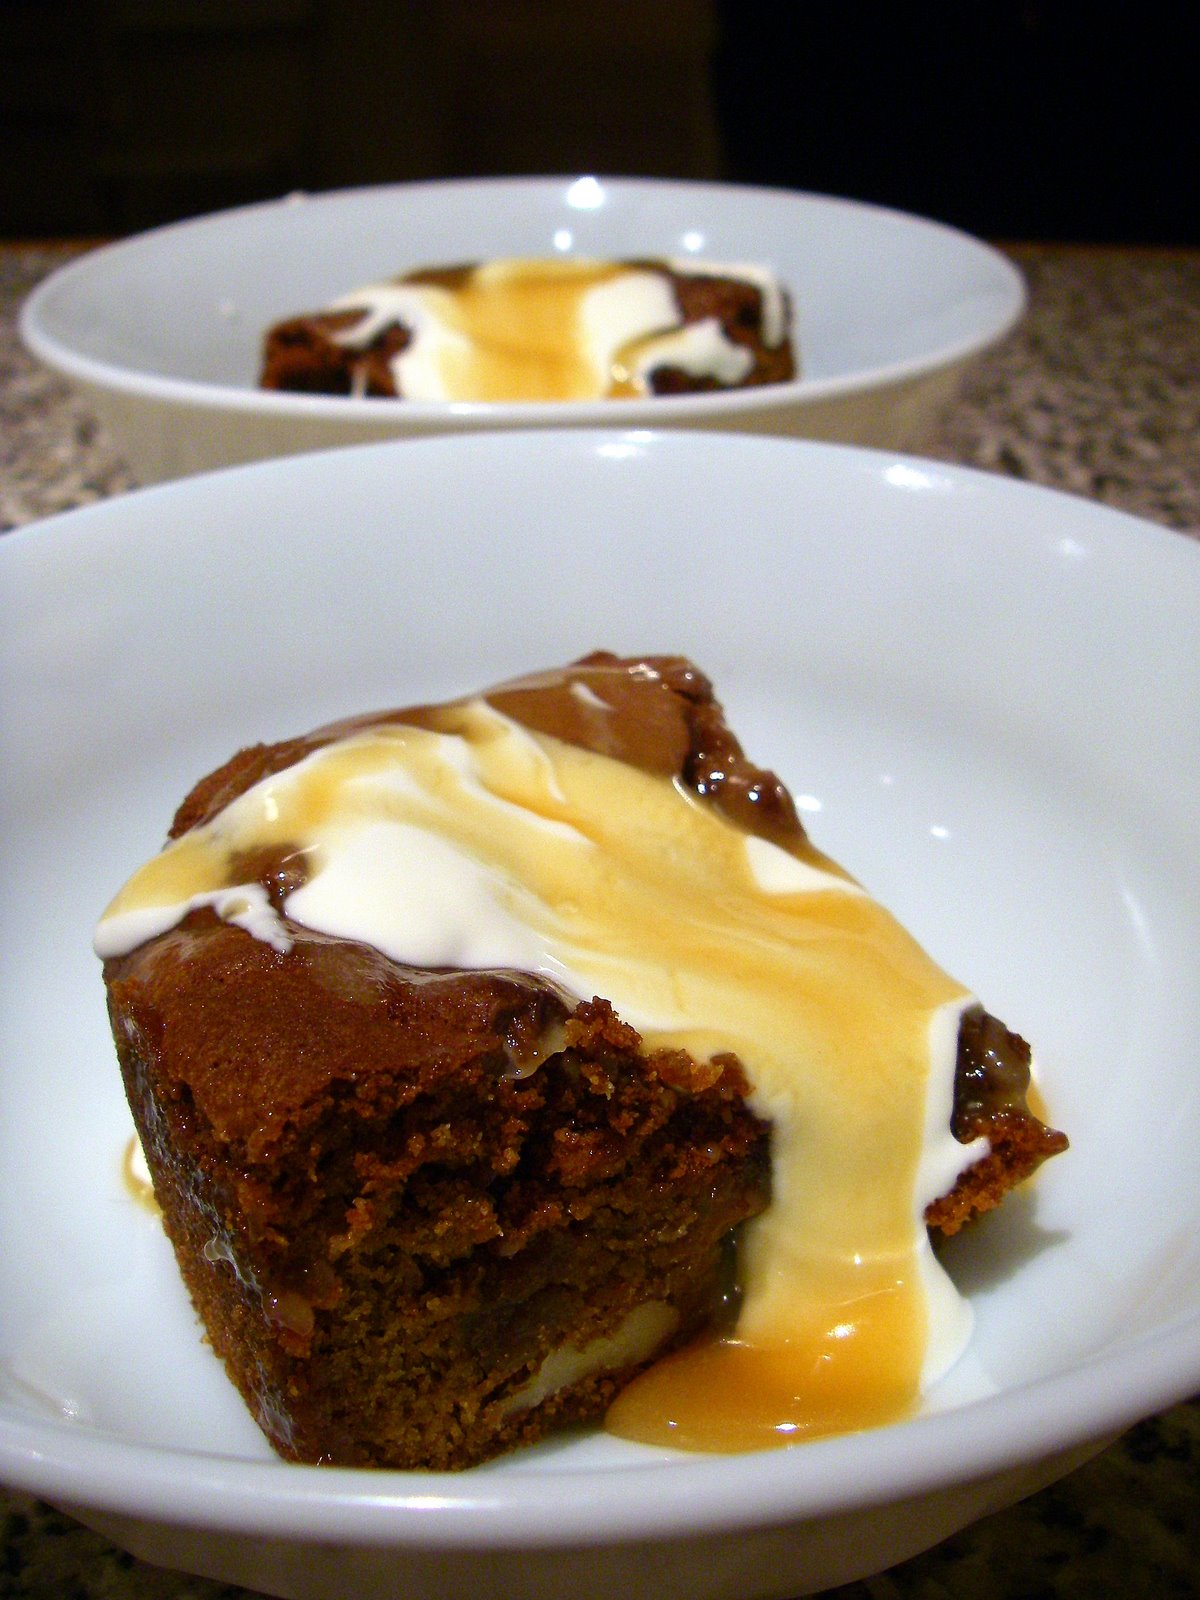 File:StickyToffeePudding.jpg - Wikipedia, the free encyclopedia